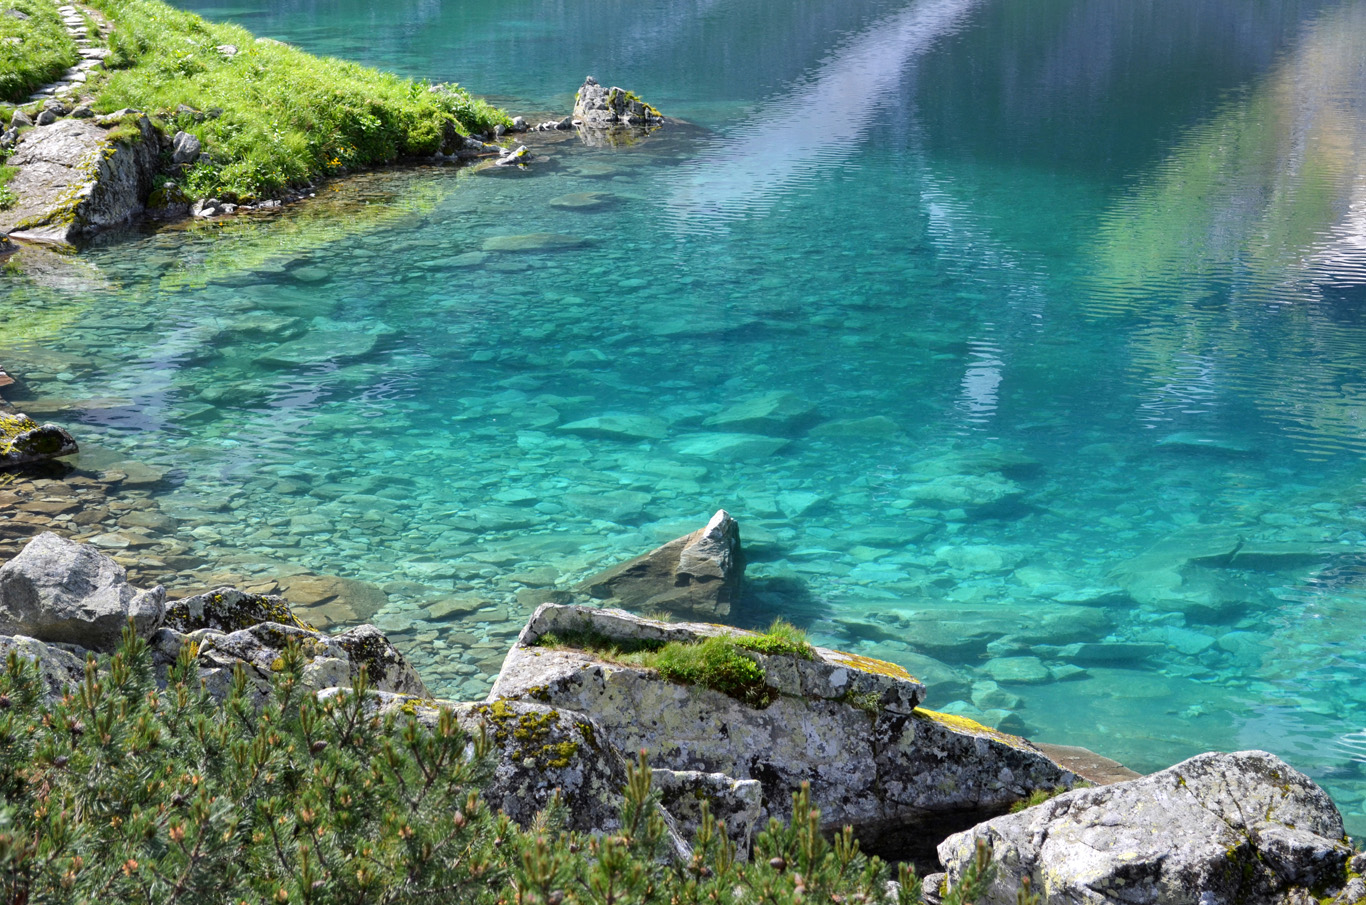 Turquoise water in Czarny Staw